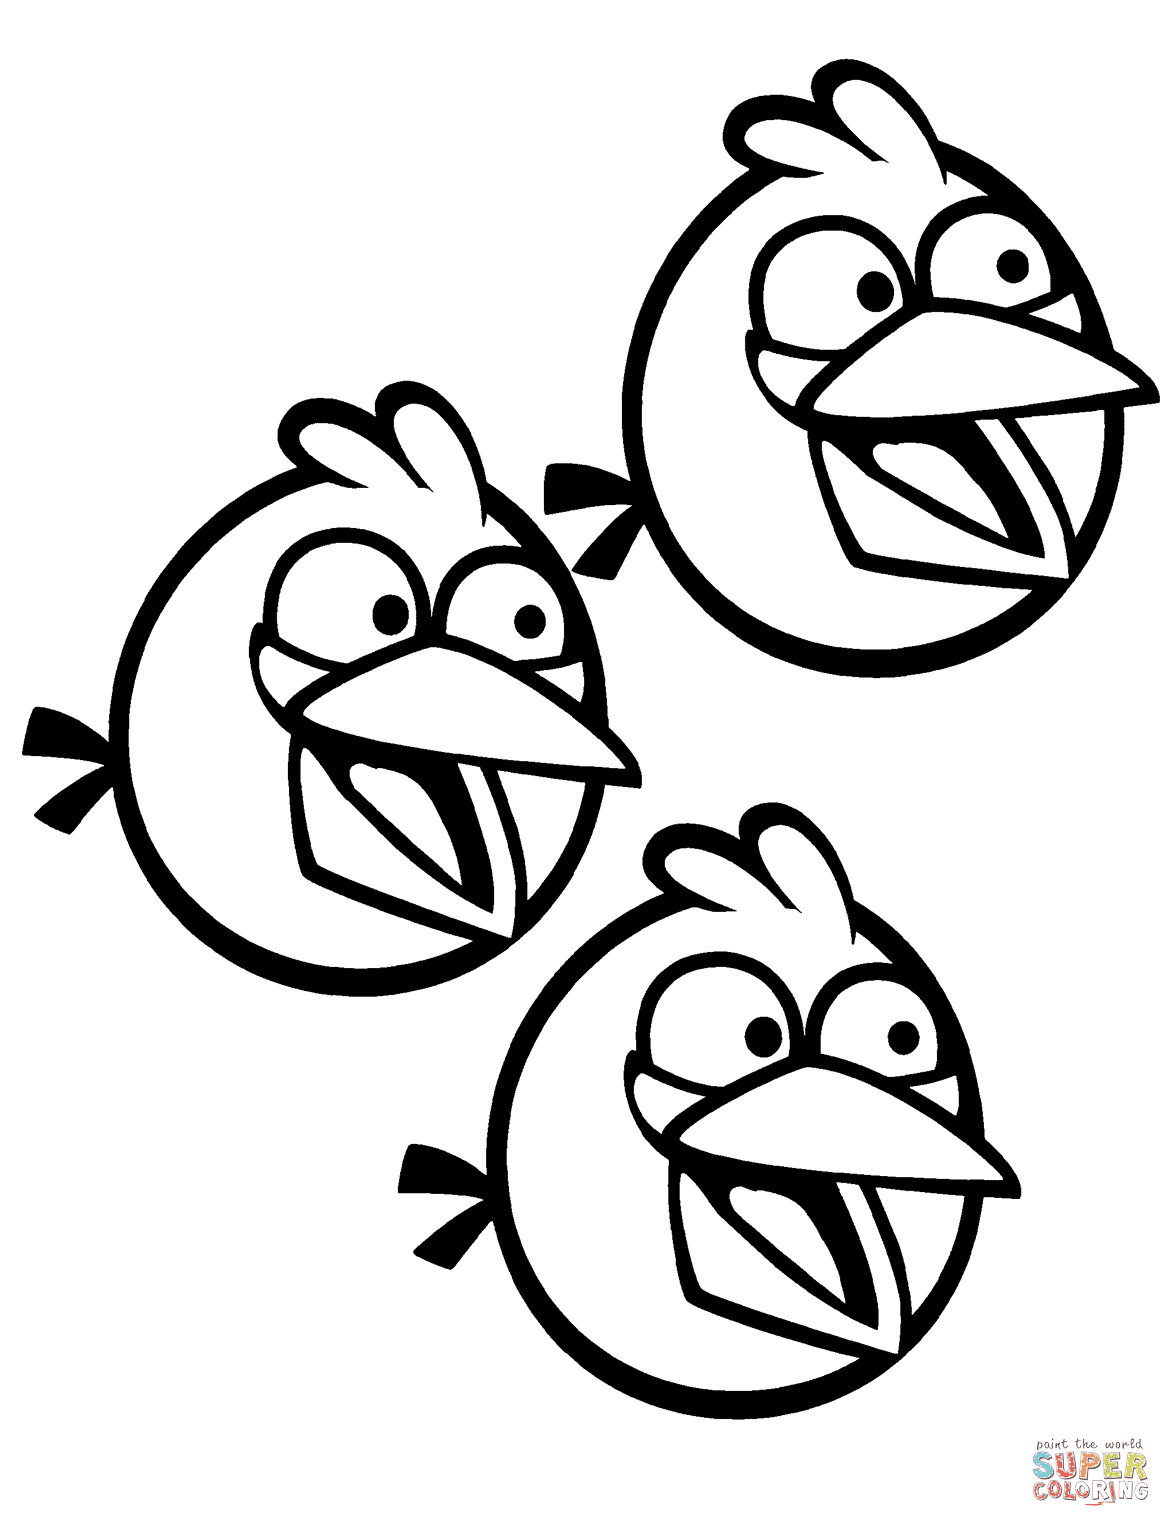 Gratis Kleurplaten Angry Birds.Free Printable Angry Birds Coloring Pages